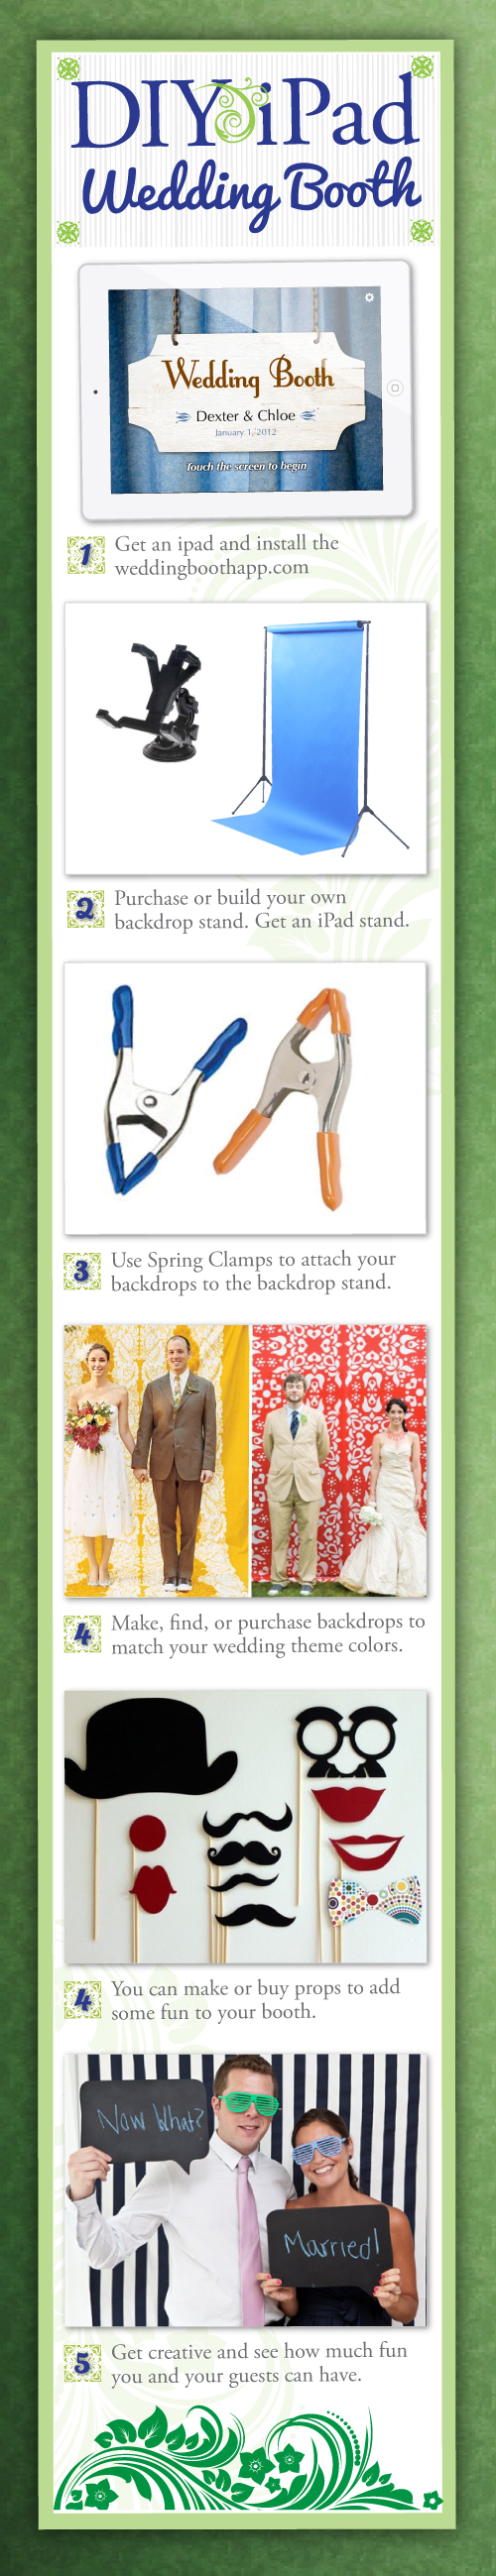 Diy wedding photo booth ipad wedding tips and inspiration wedding photobooth do it yourself n save solutioingenieria Choice Image